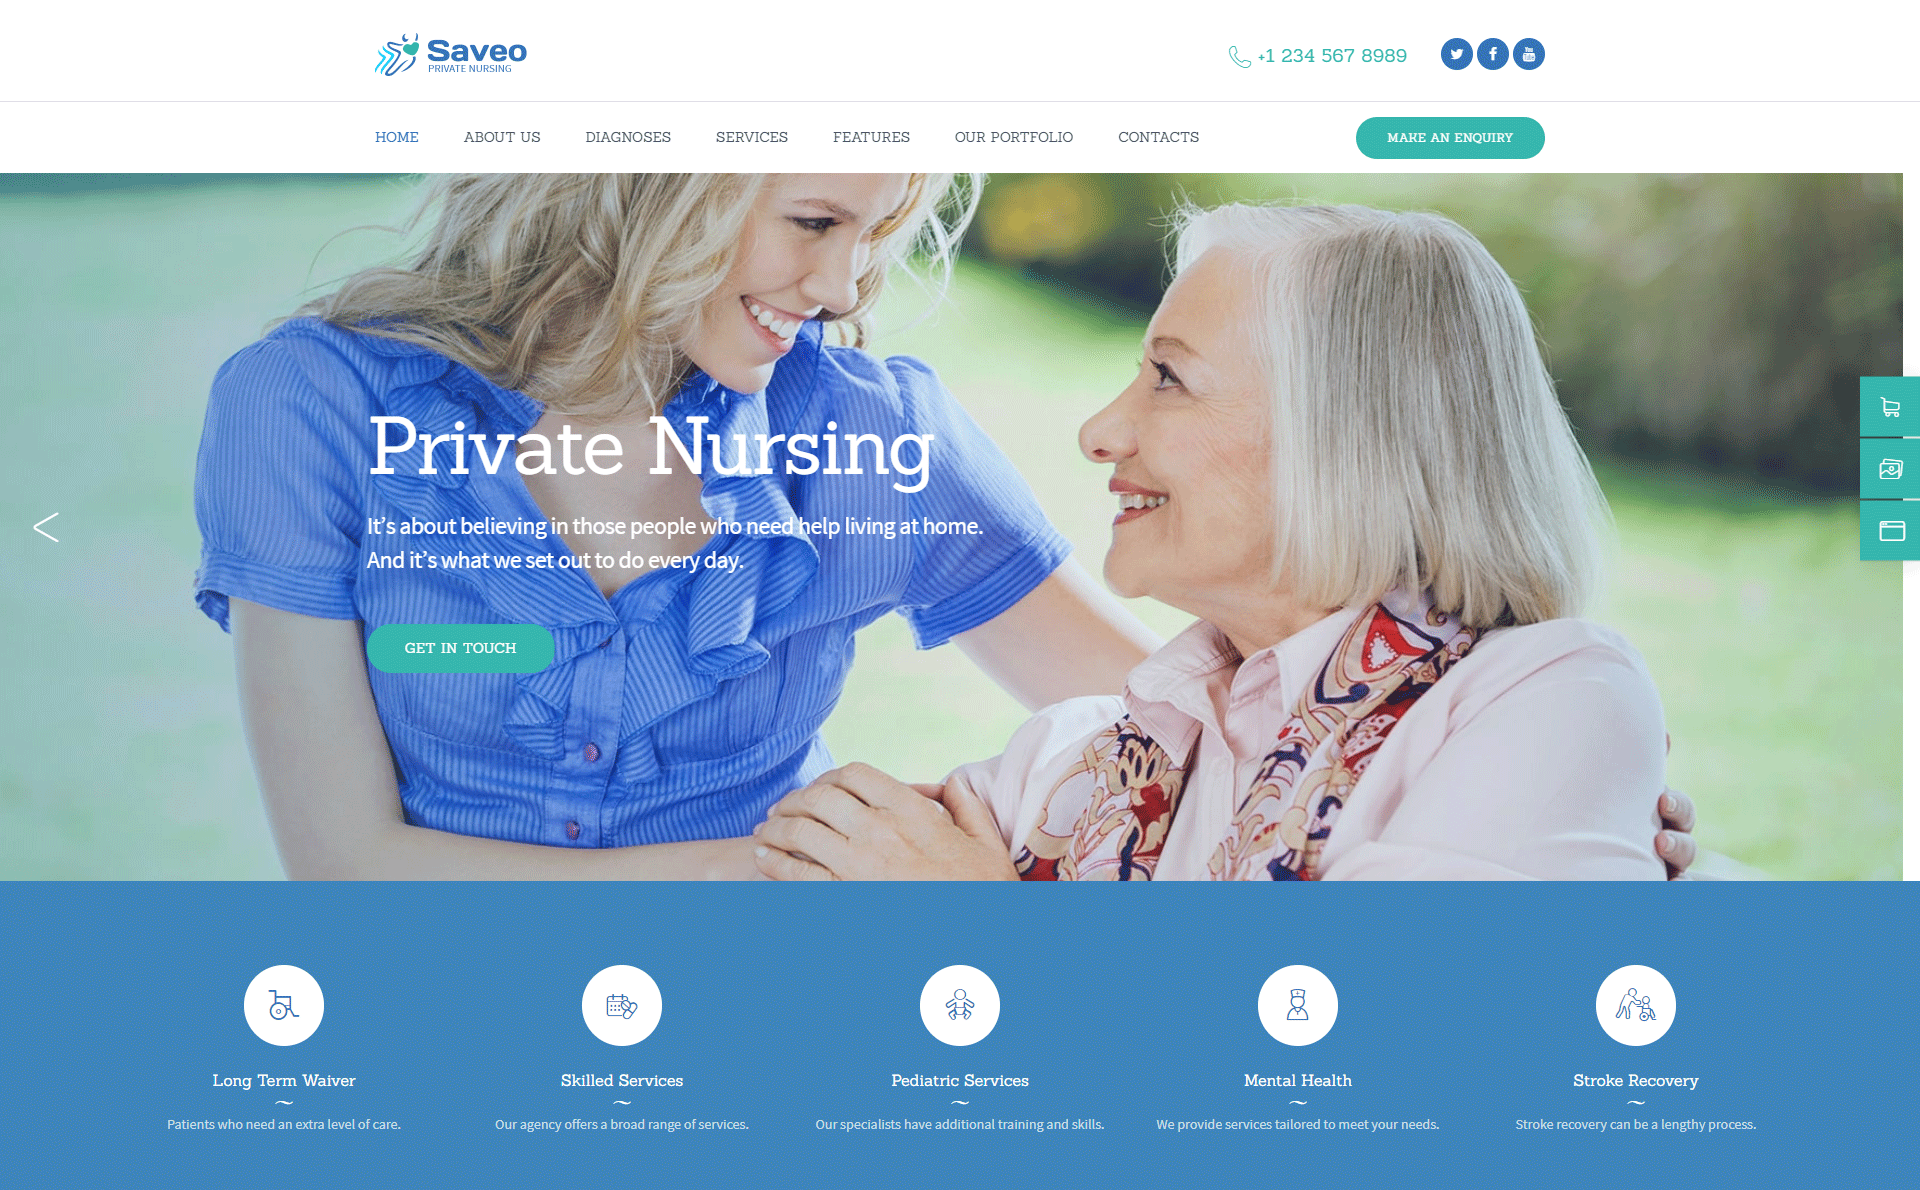 Saveo | In-home Care & Private Nursing Agency WordPress Theme